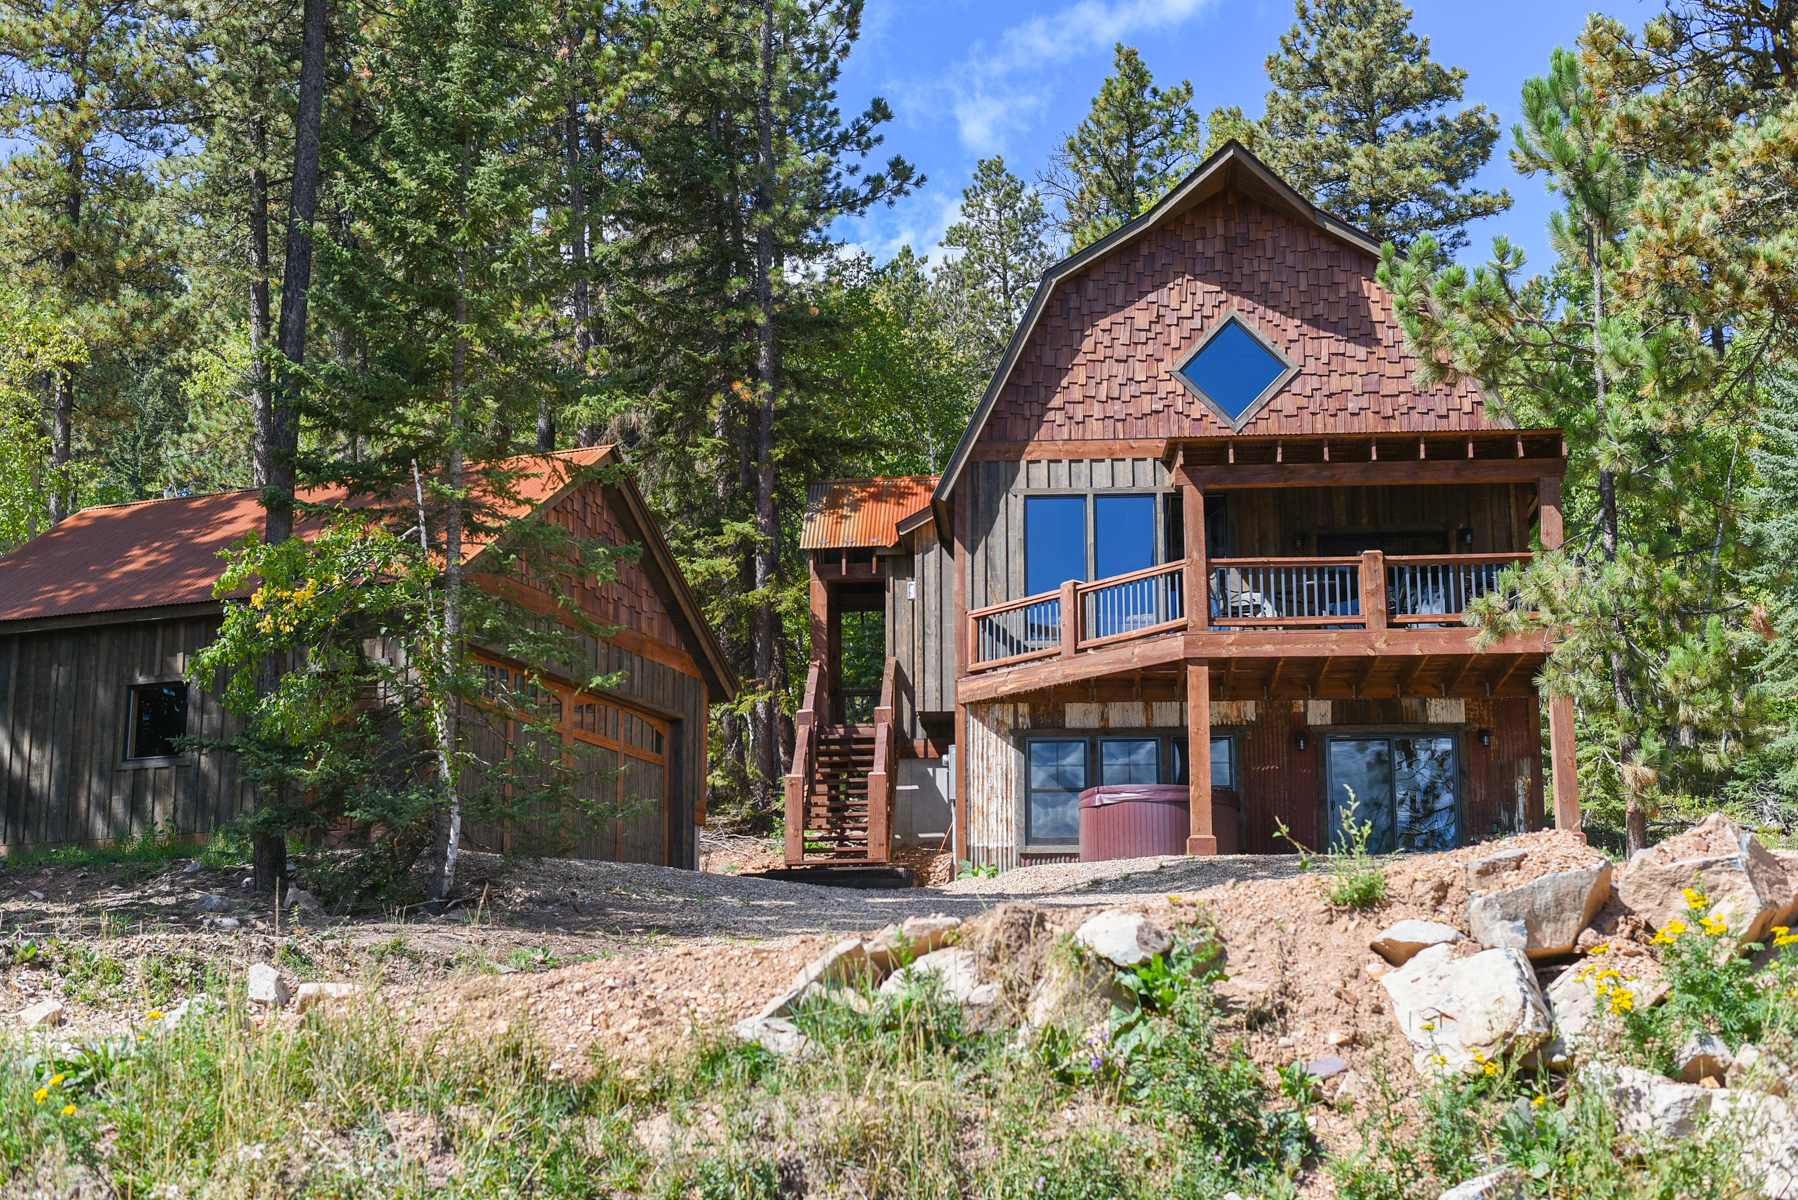 arizona bunkhouse rental cabin rentals mountain uncategorized cabins white vacation pinetop